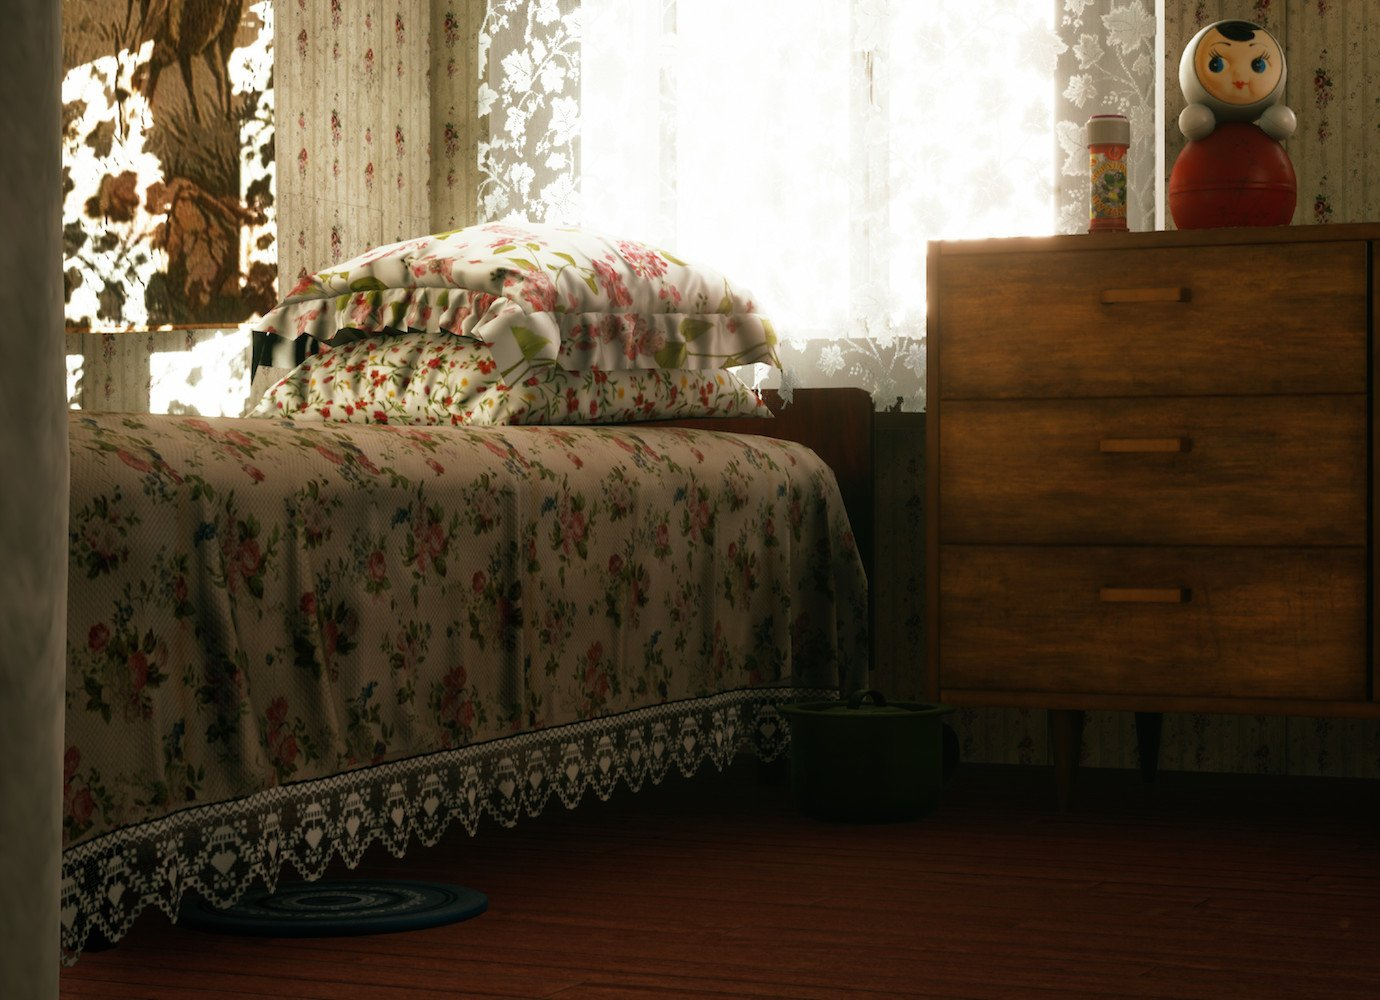 This cosy video game takes you to a Russian dacha for an afternoon nap